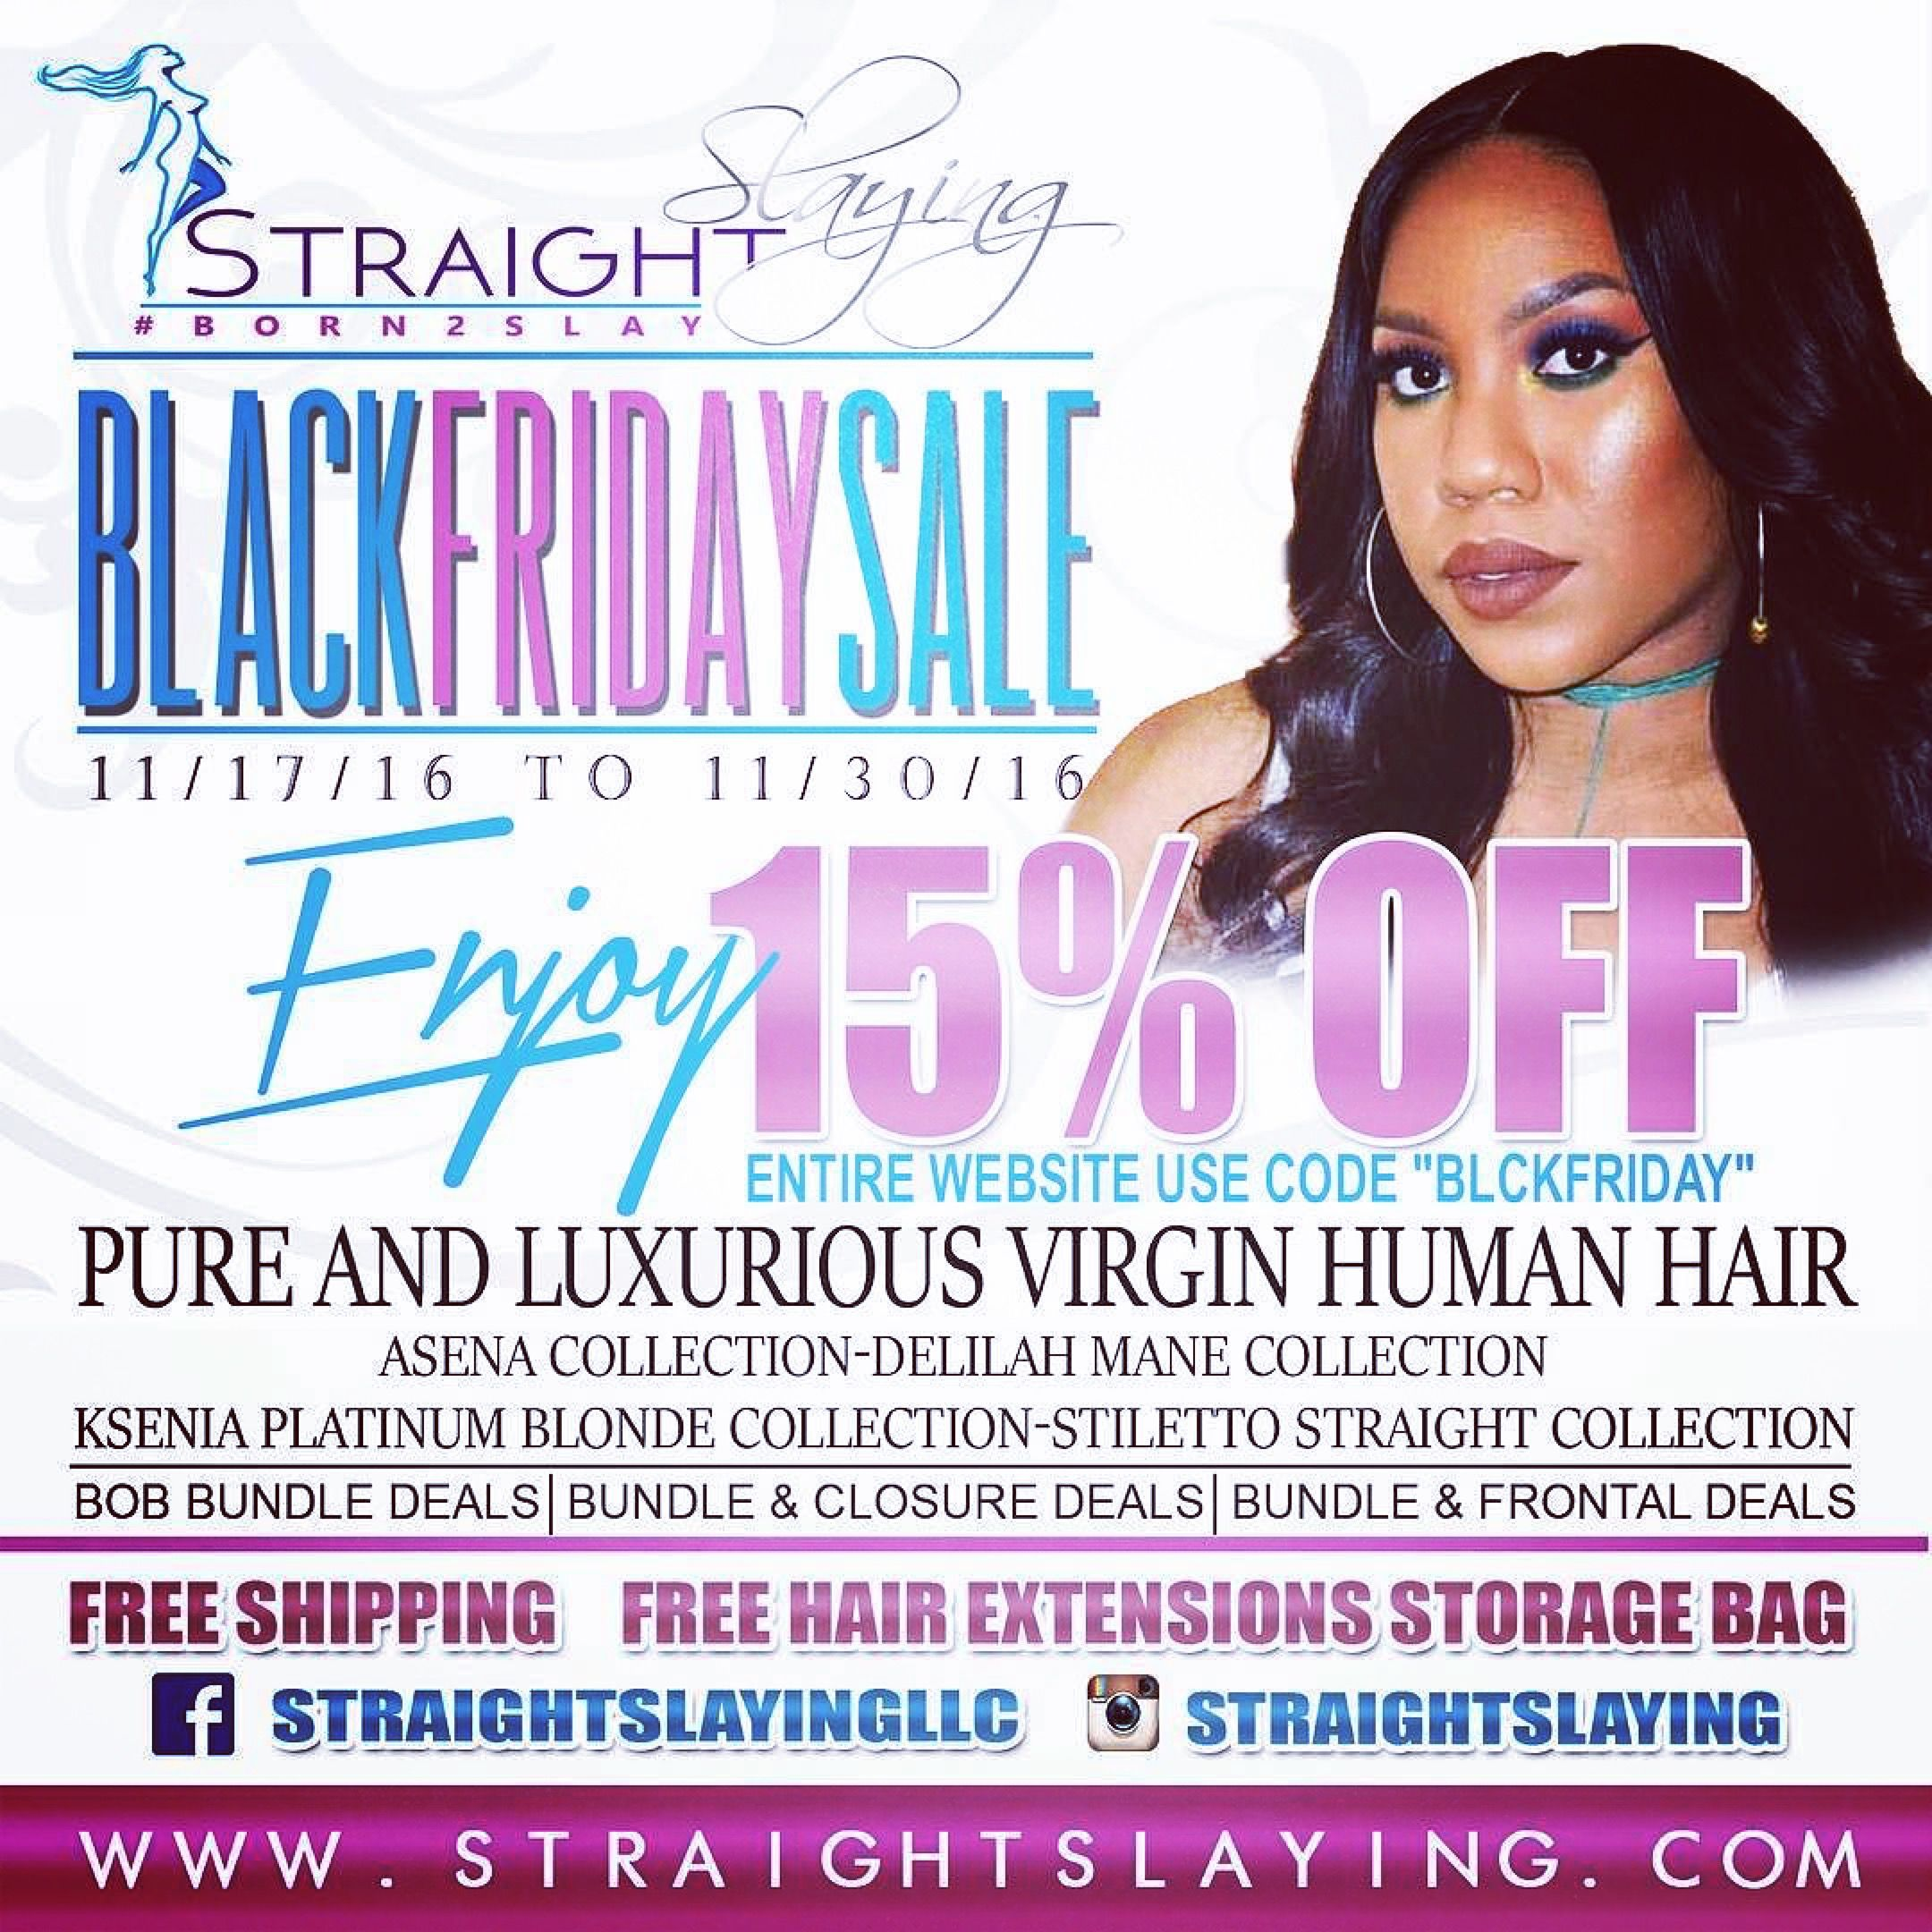 Hair Extensions EARLY BLACK FRIDAY AND CYBER MONDAY SALE 15 OFF ENTIRE WEBSITE USE